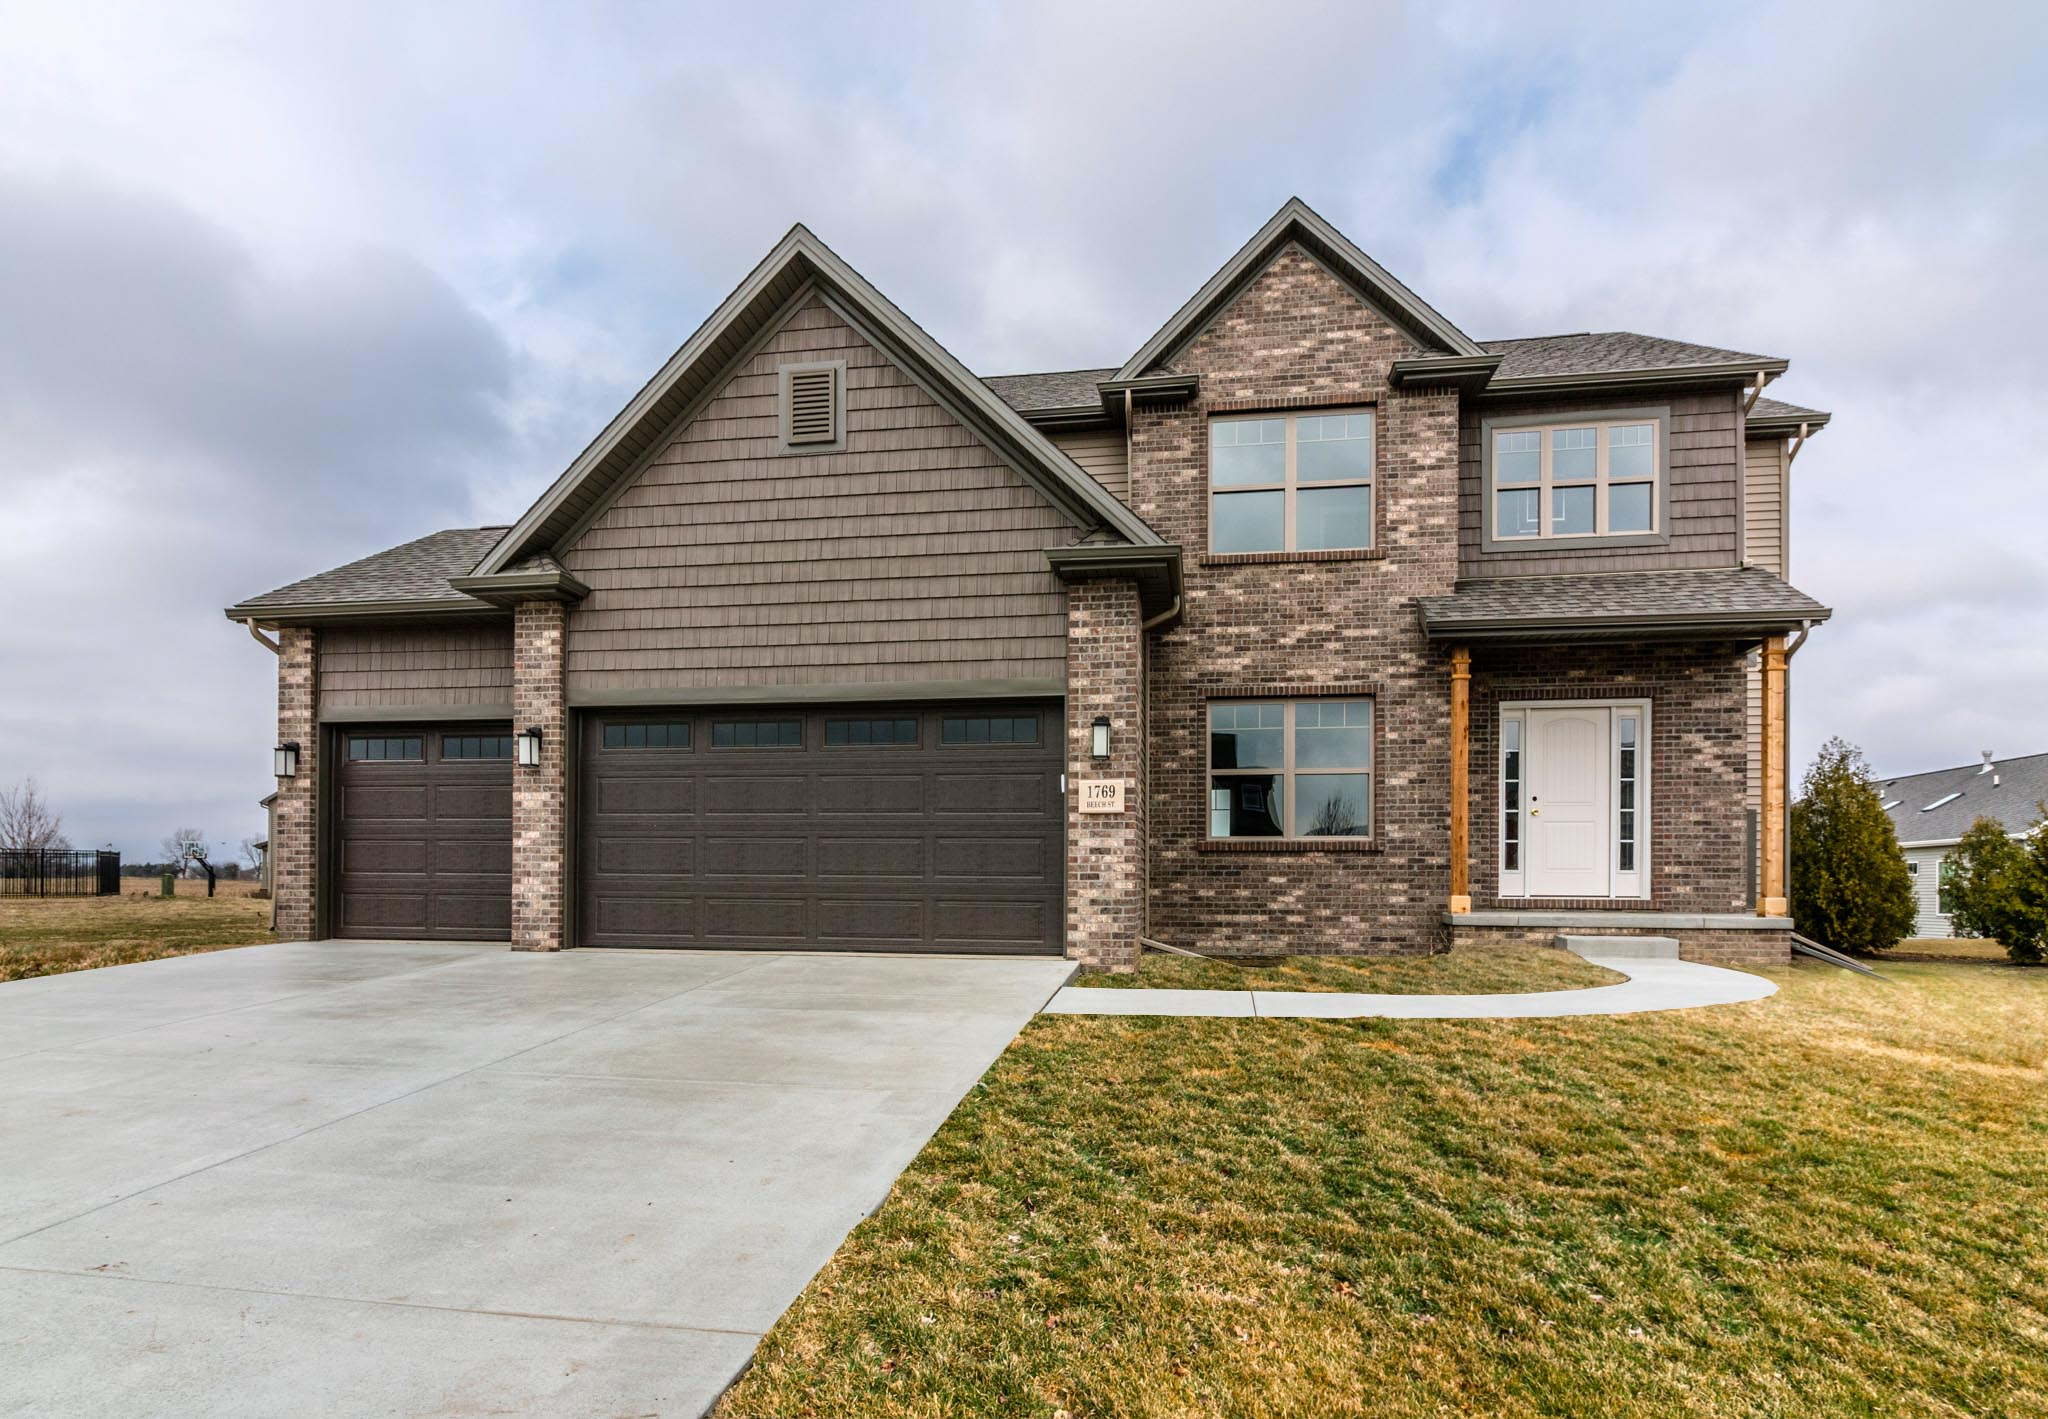 two story home with brown garage doors, brown brick, brown and tan siding in Normal il